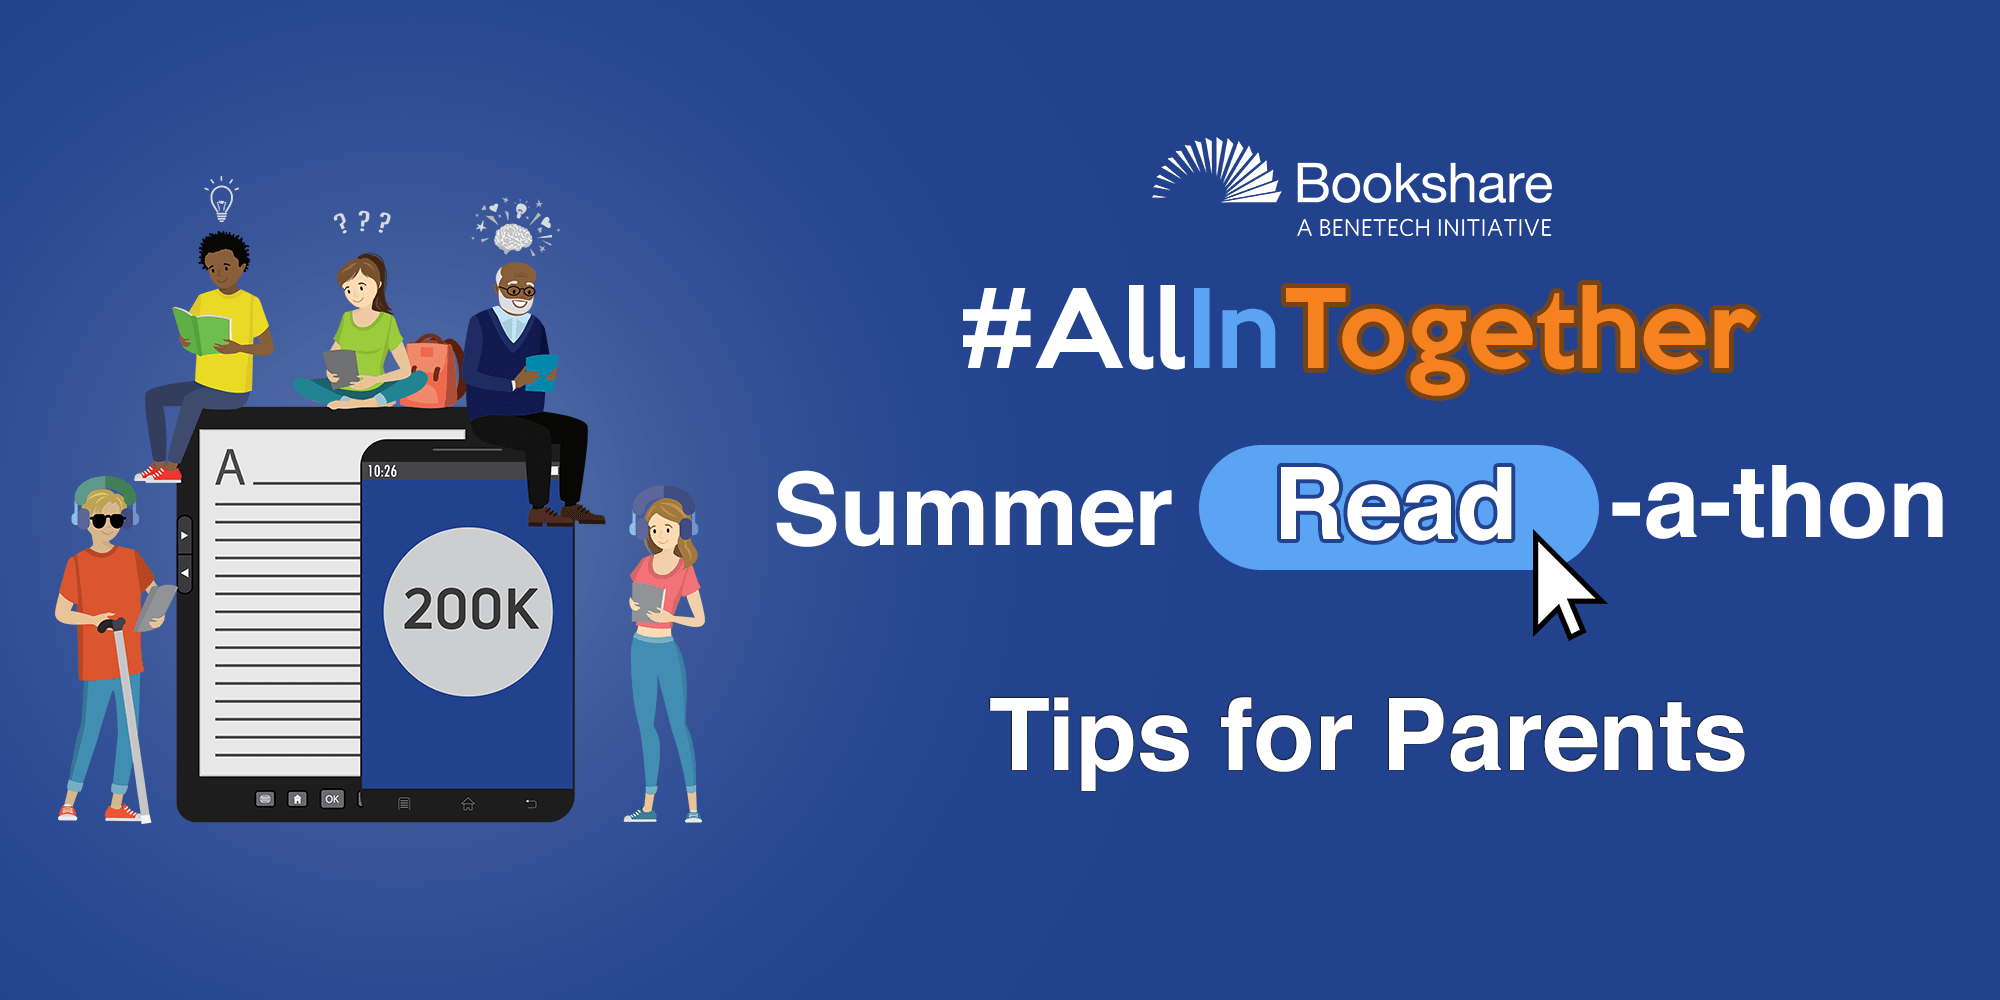 Bookshare #AllInTogether Summer Read-a-thon tips for parents with 4 graphic figures reading books and 200K on a device